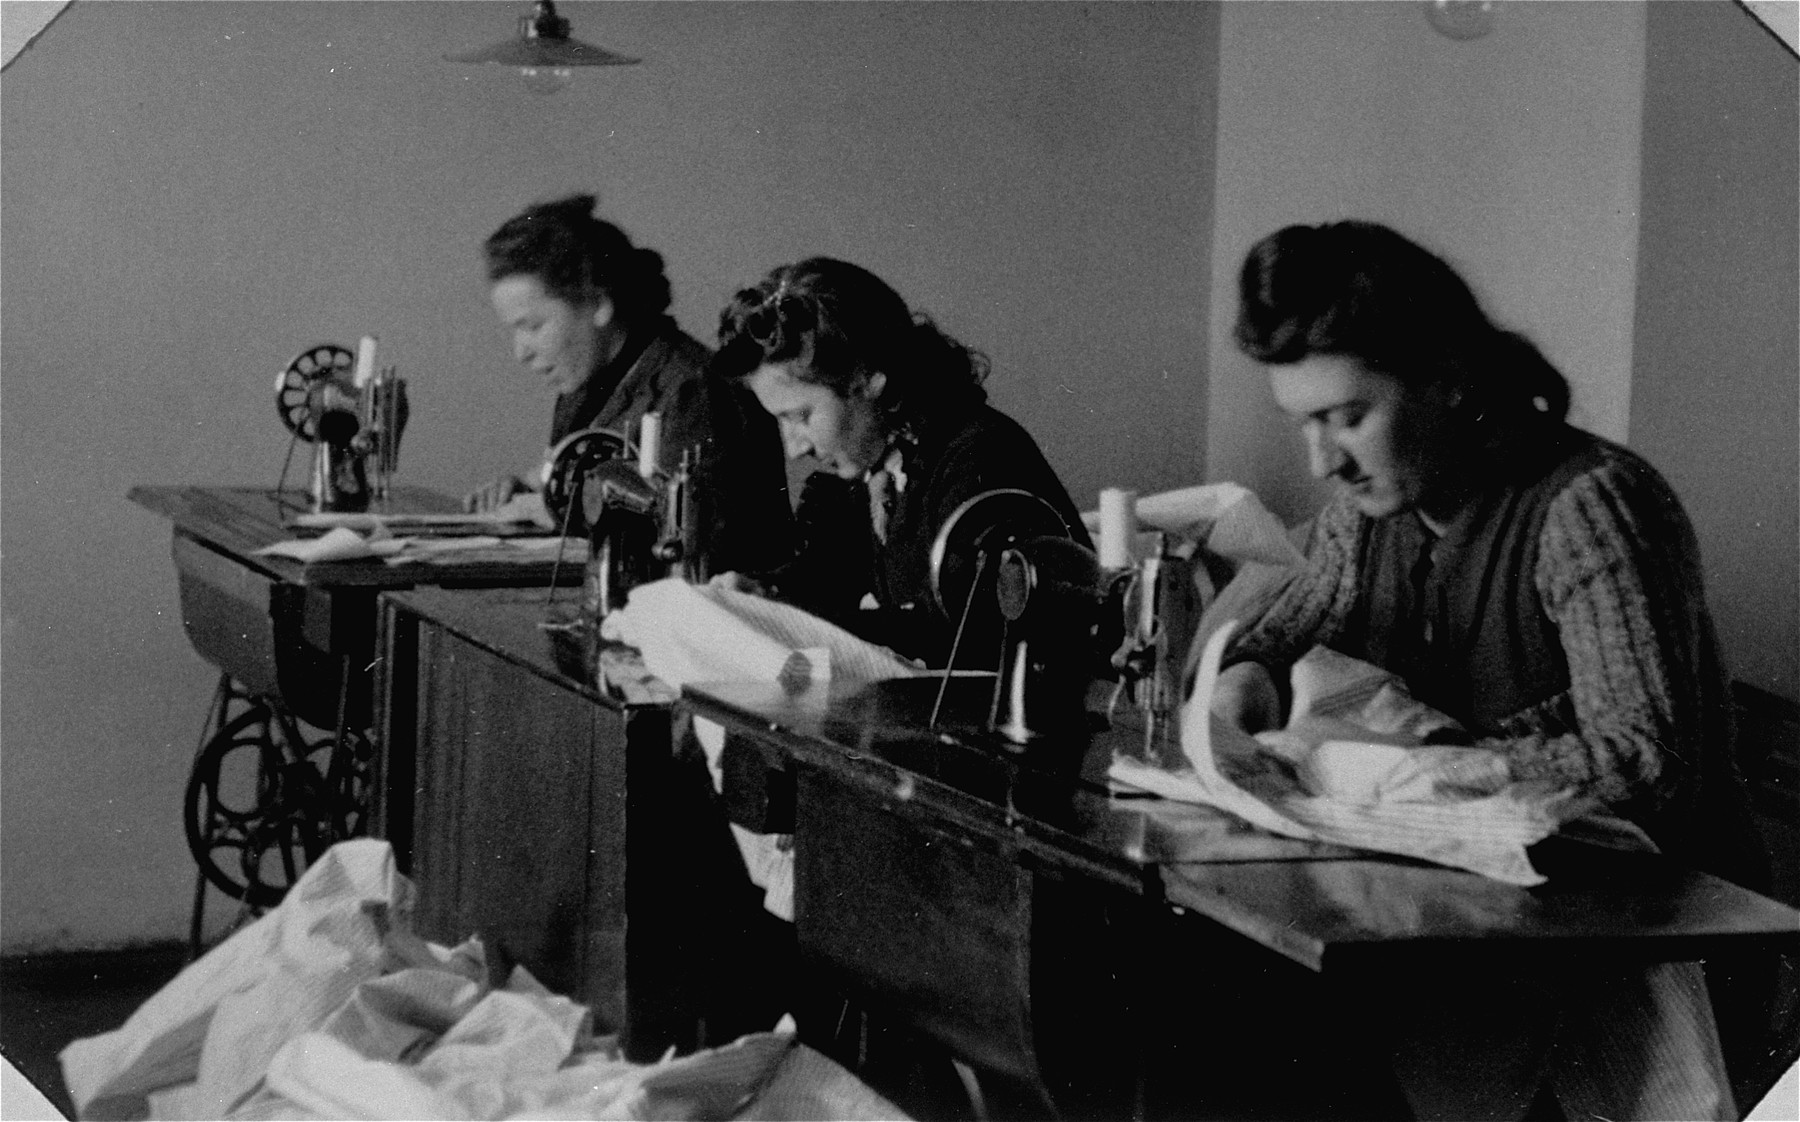 Jewish women work at sewing machines in a workshop in the Bochnia ghetto.